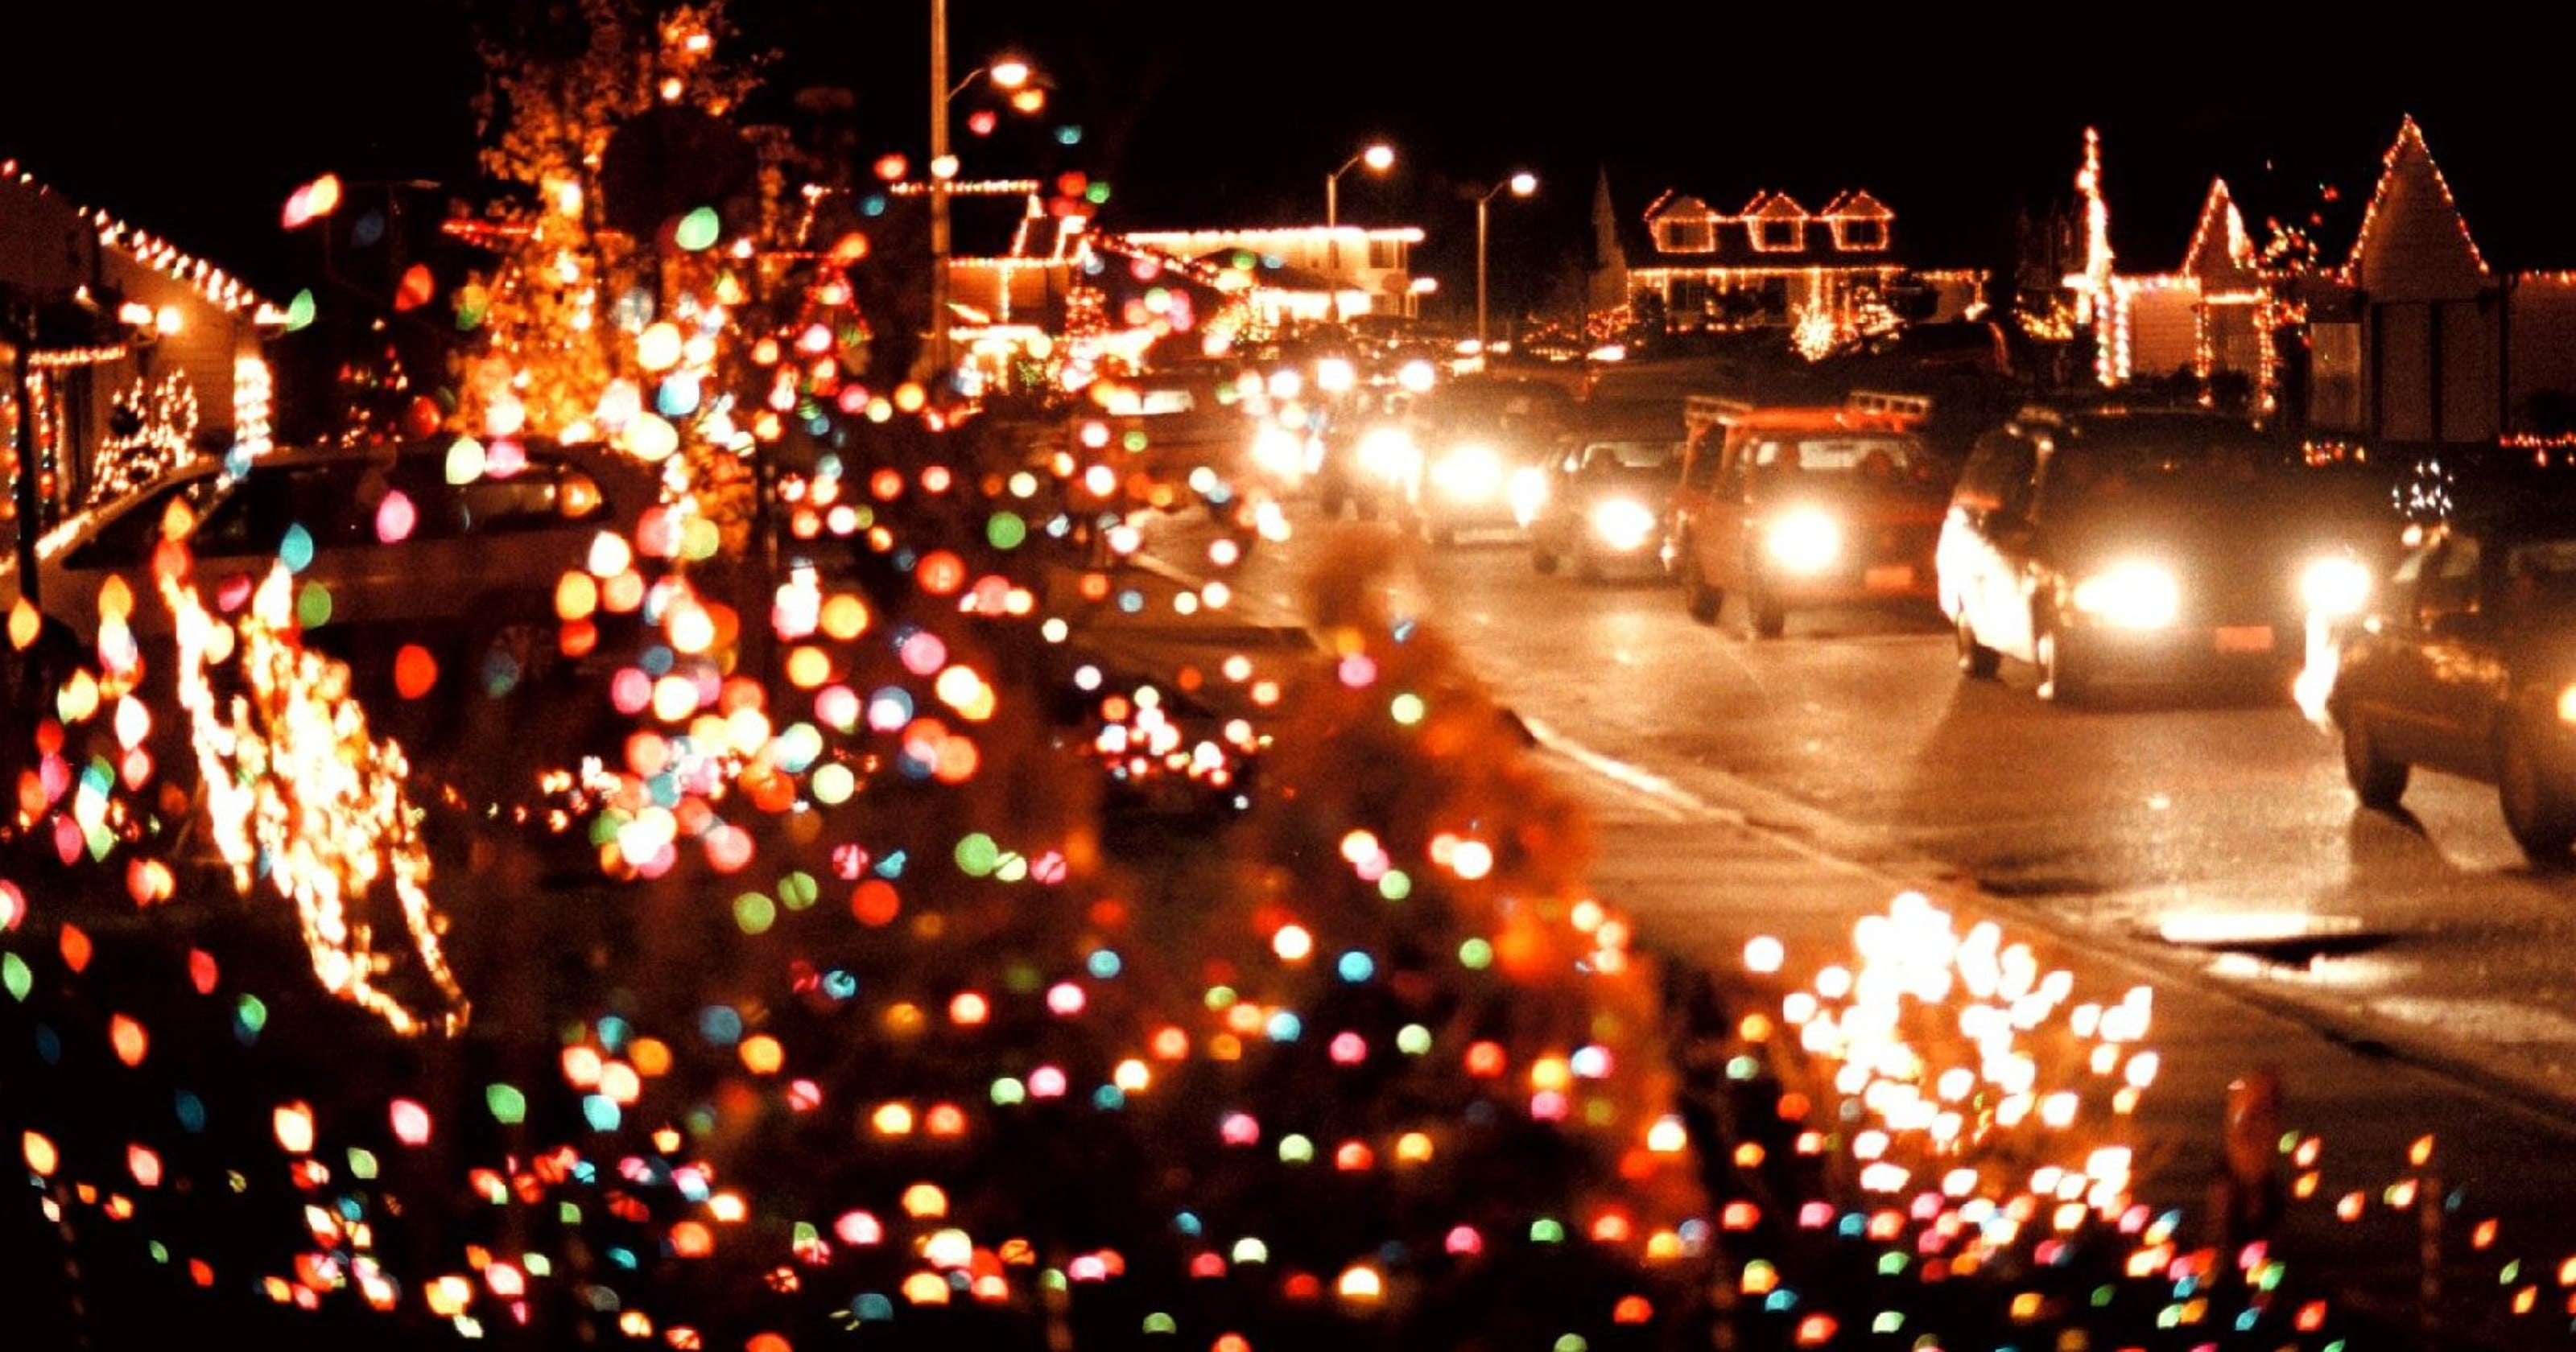 Last weekend to see the Miracle of Christmas Lights in Keizer